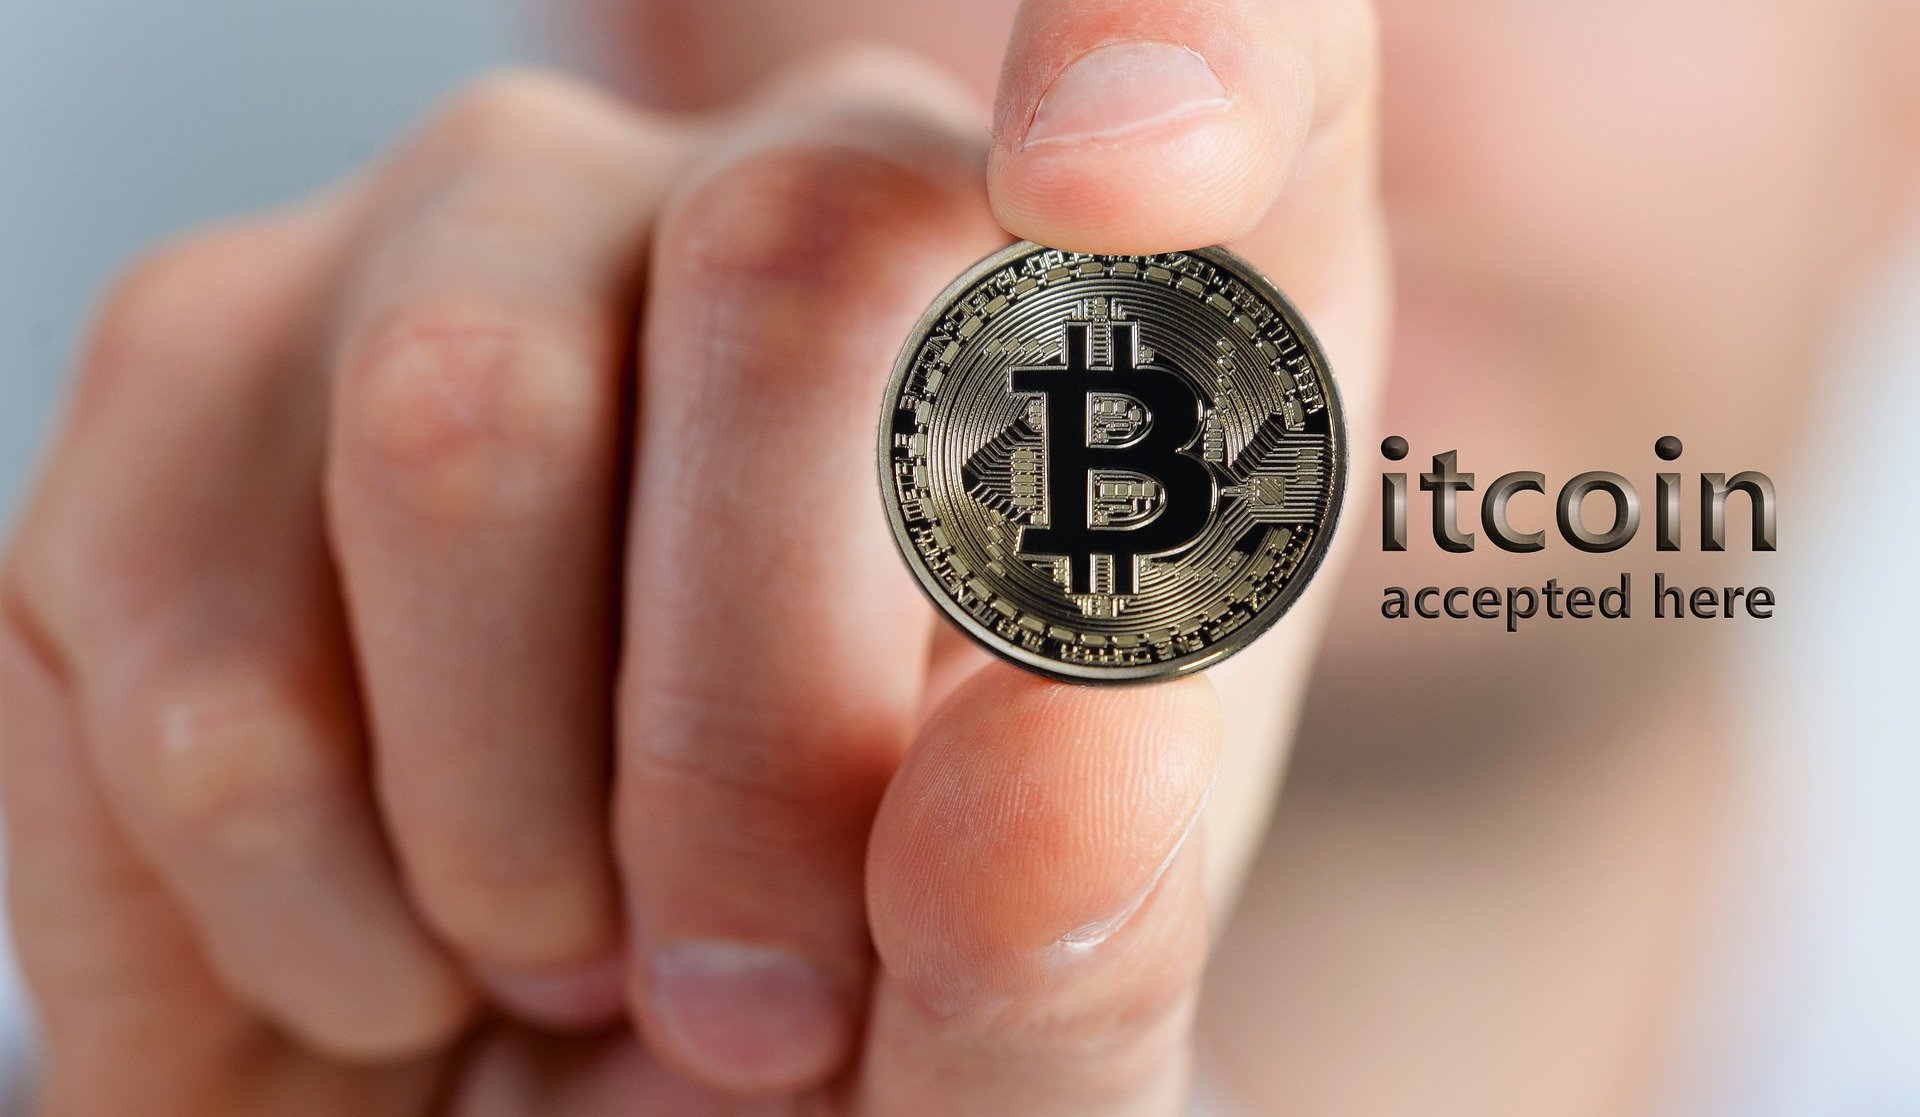 TrueFacet is now accepting cryptocurrency. Click here to learn about the convenience and security of making online purchases with your favorite cryptocurrency!